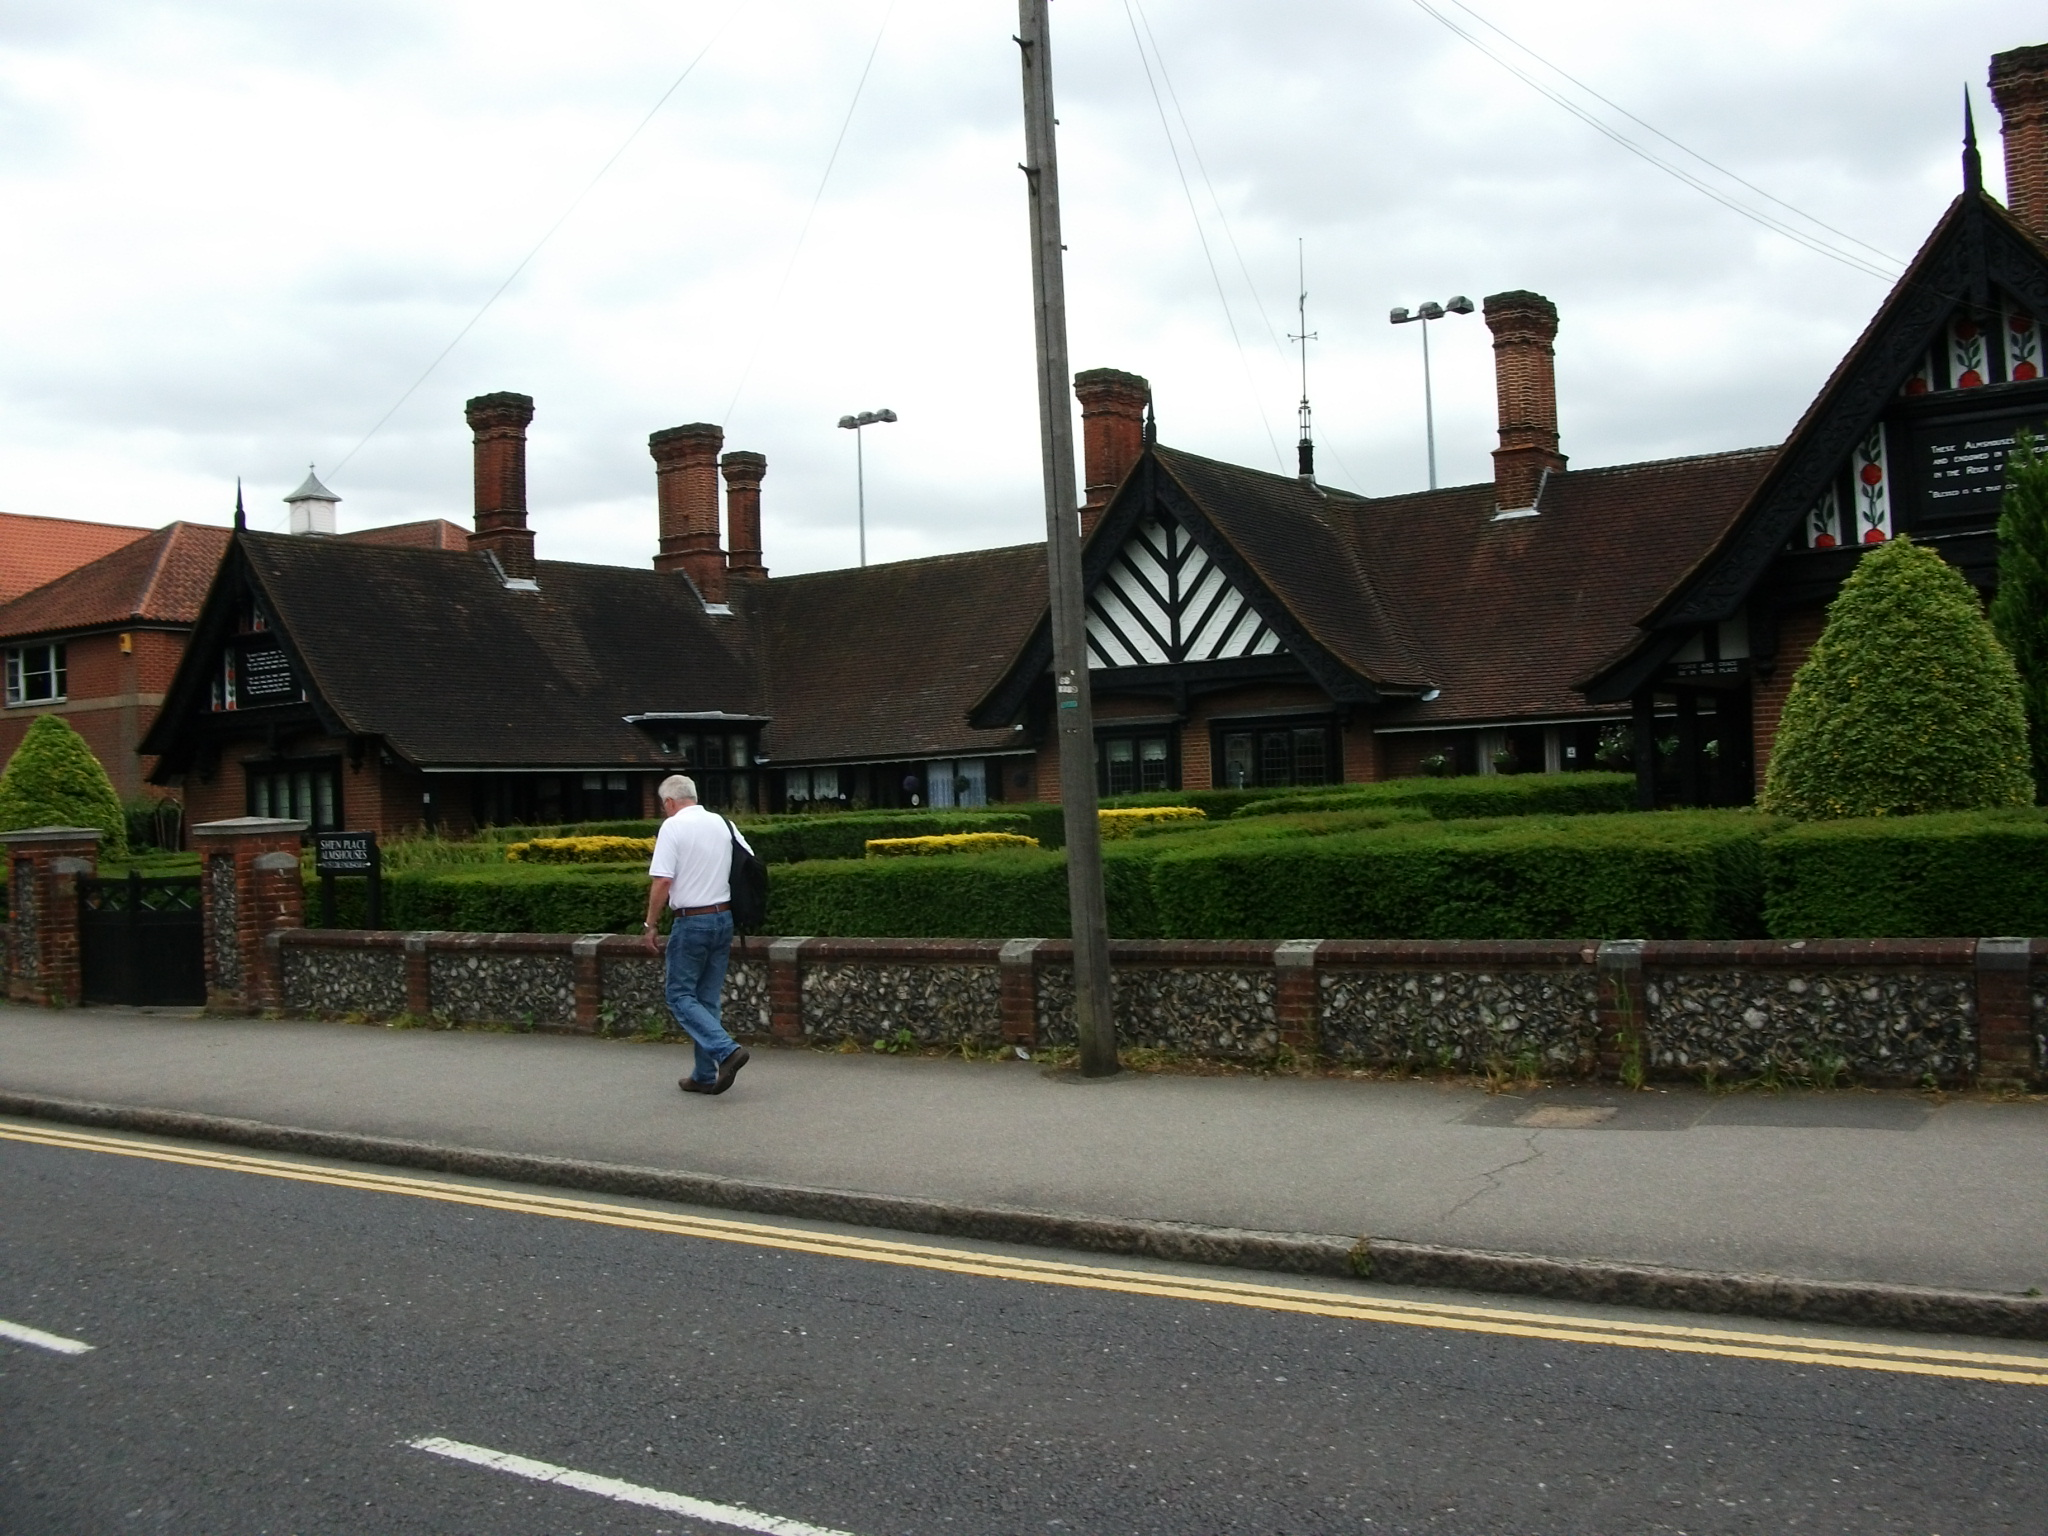 Shen Place Almshouses from Shenfield Road Brentwood